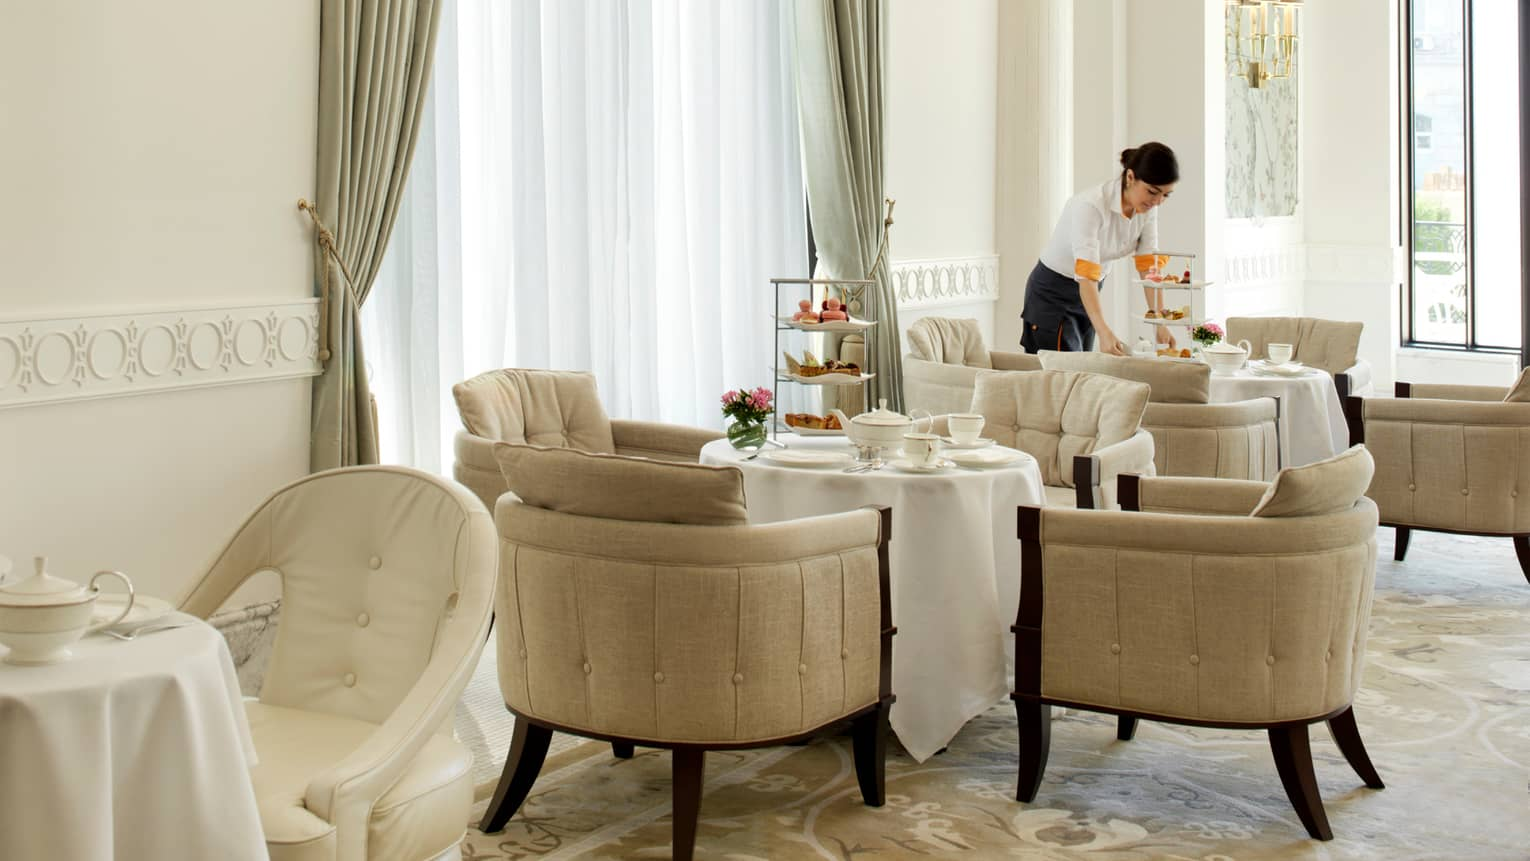 Server sets three-tiered trays with desserts and tea pots on round table in sunny Piazza dining room